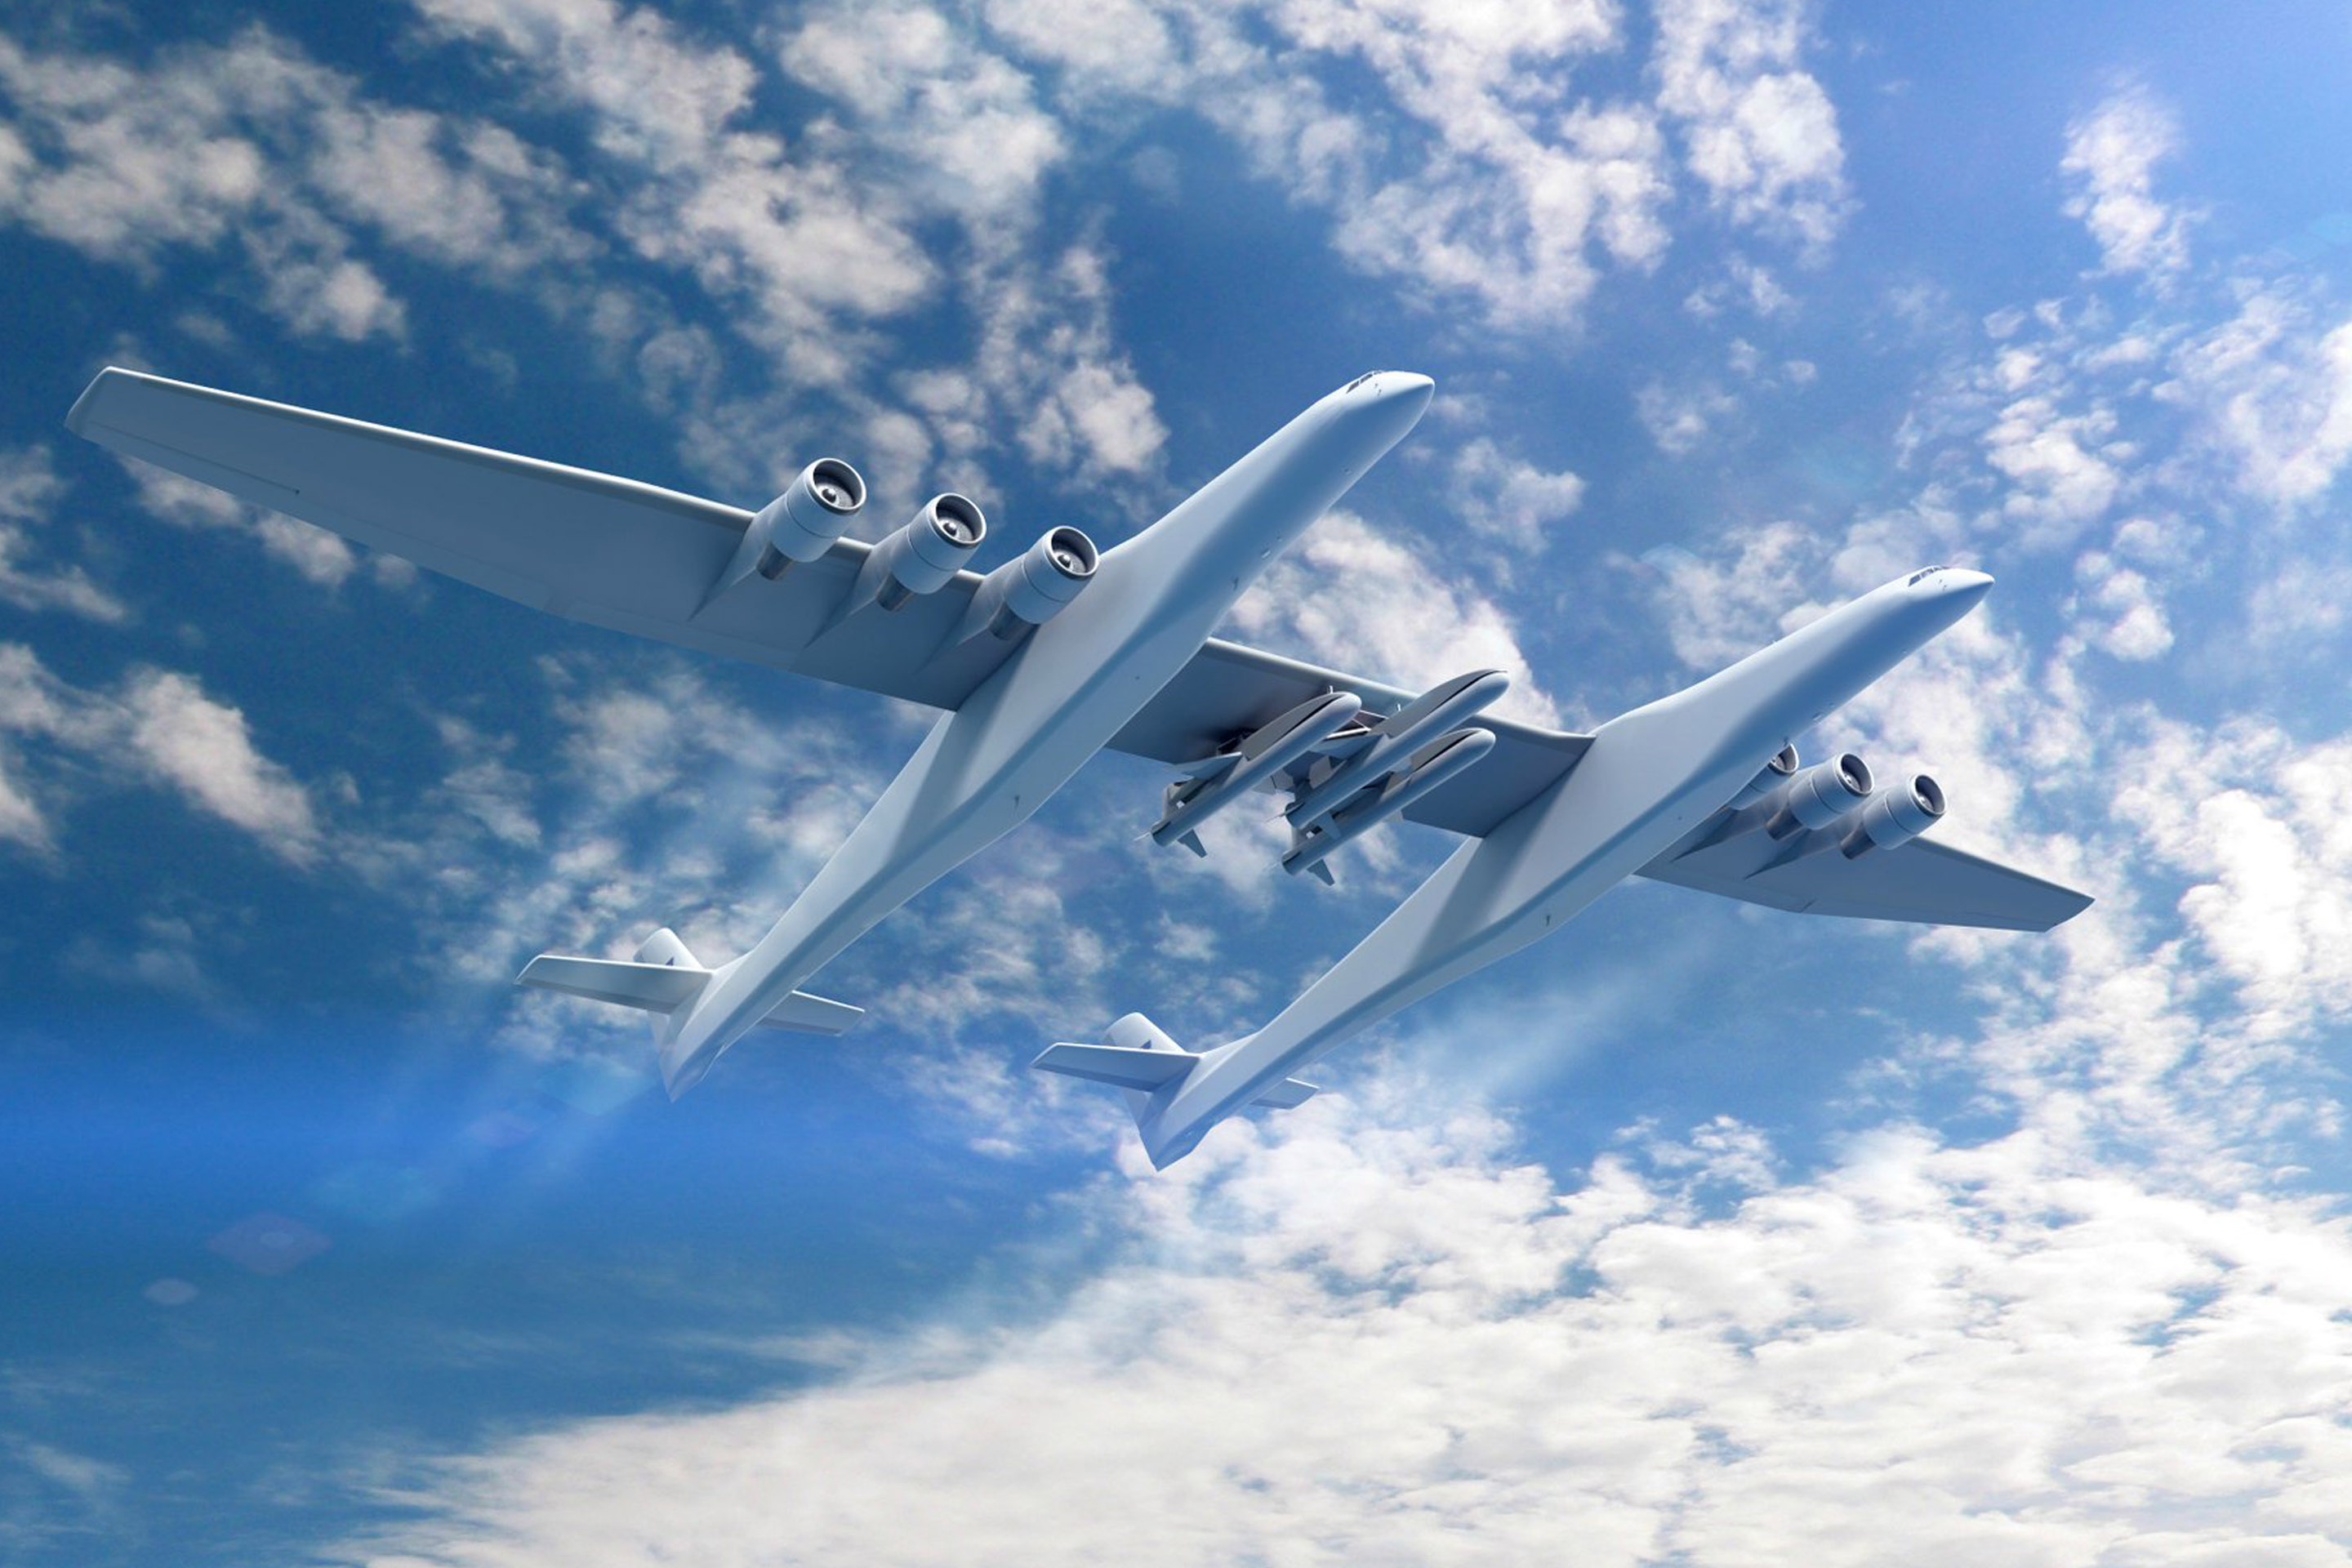 A rendering of a Stratolaunch. When completed, it will be the world's largest composite aircraft and have the largest wing span of any airplane ever built.